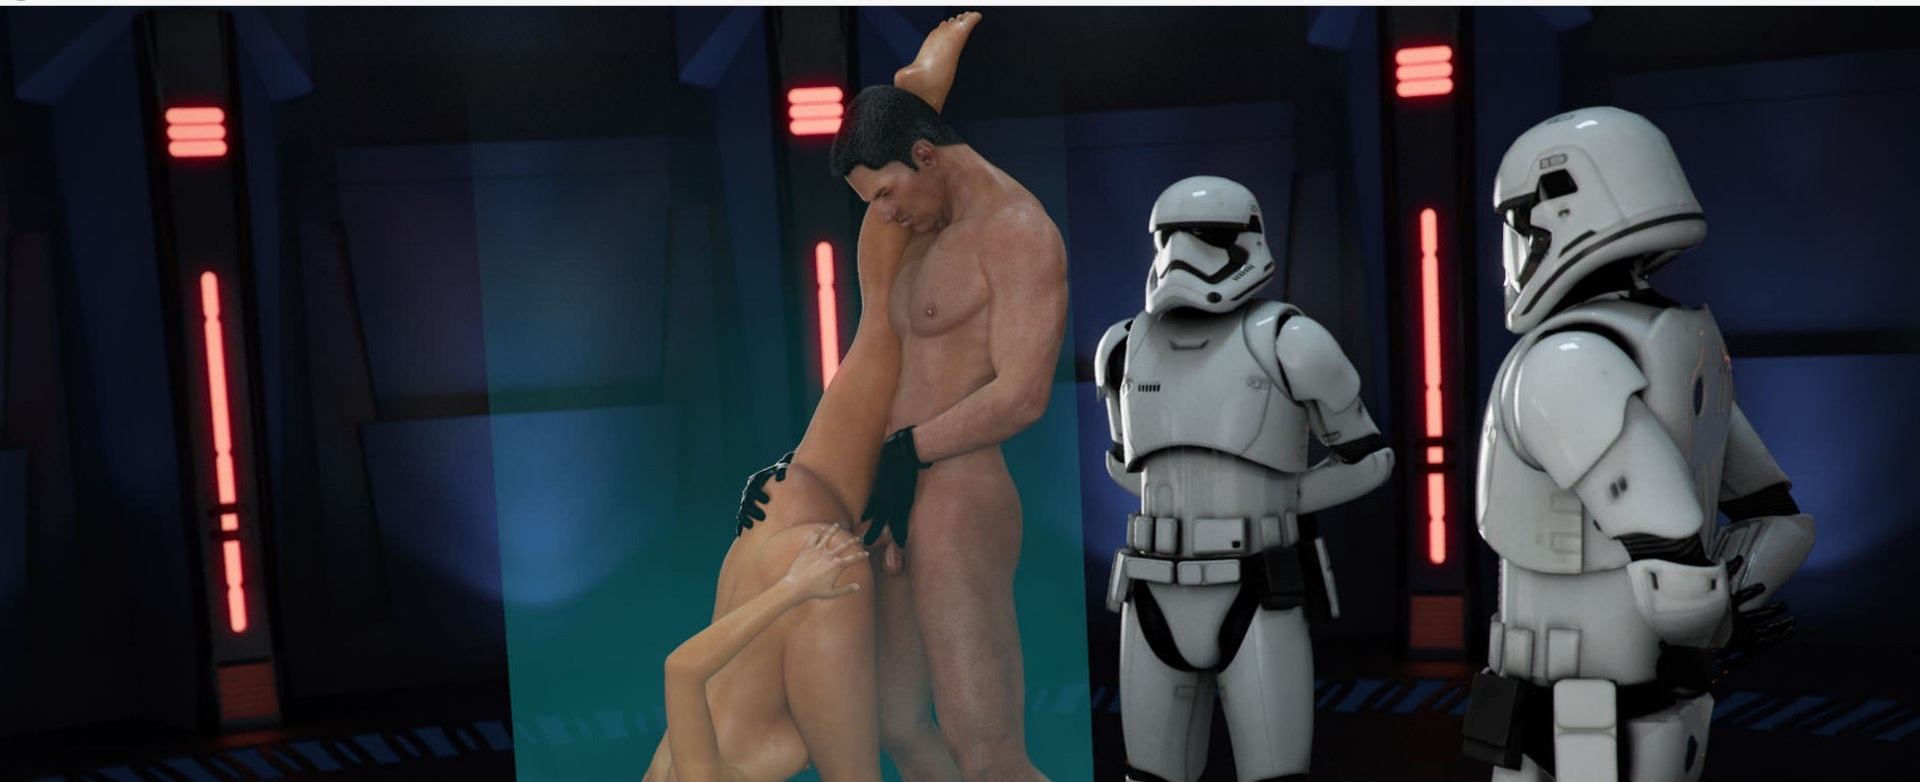 Star Whores Porn Xxx Star Whores Porn Xxx Click Here To Play Star Whores Jpg